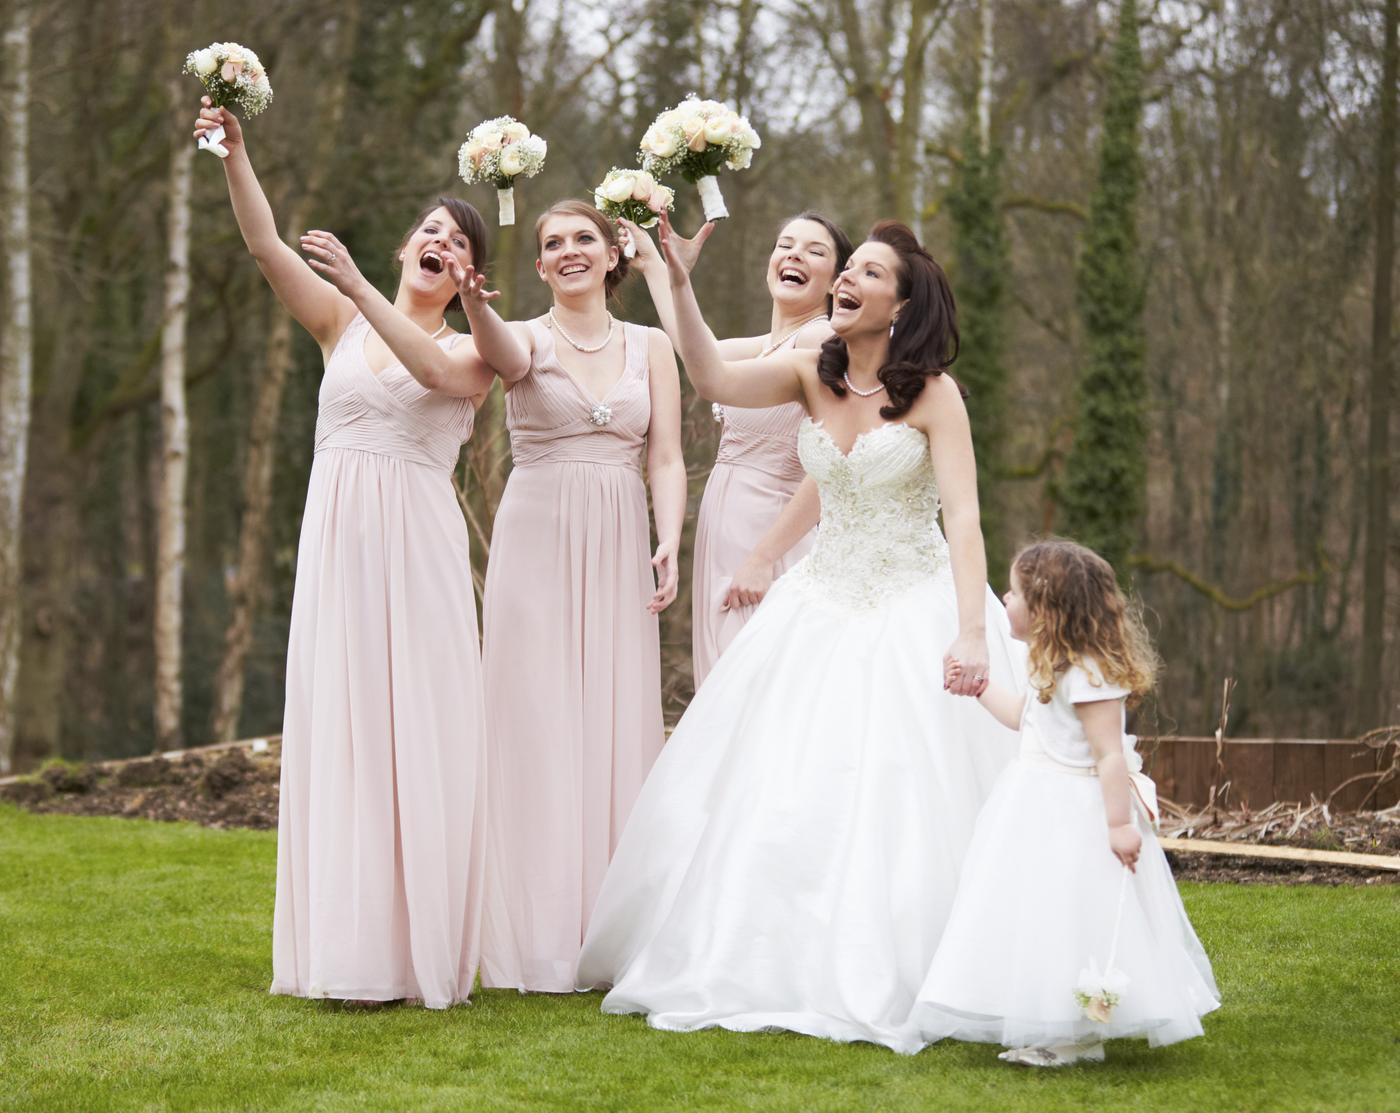 17 thoughts all bridesmaids have ahead of the big day